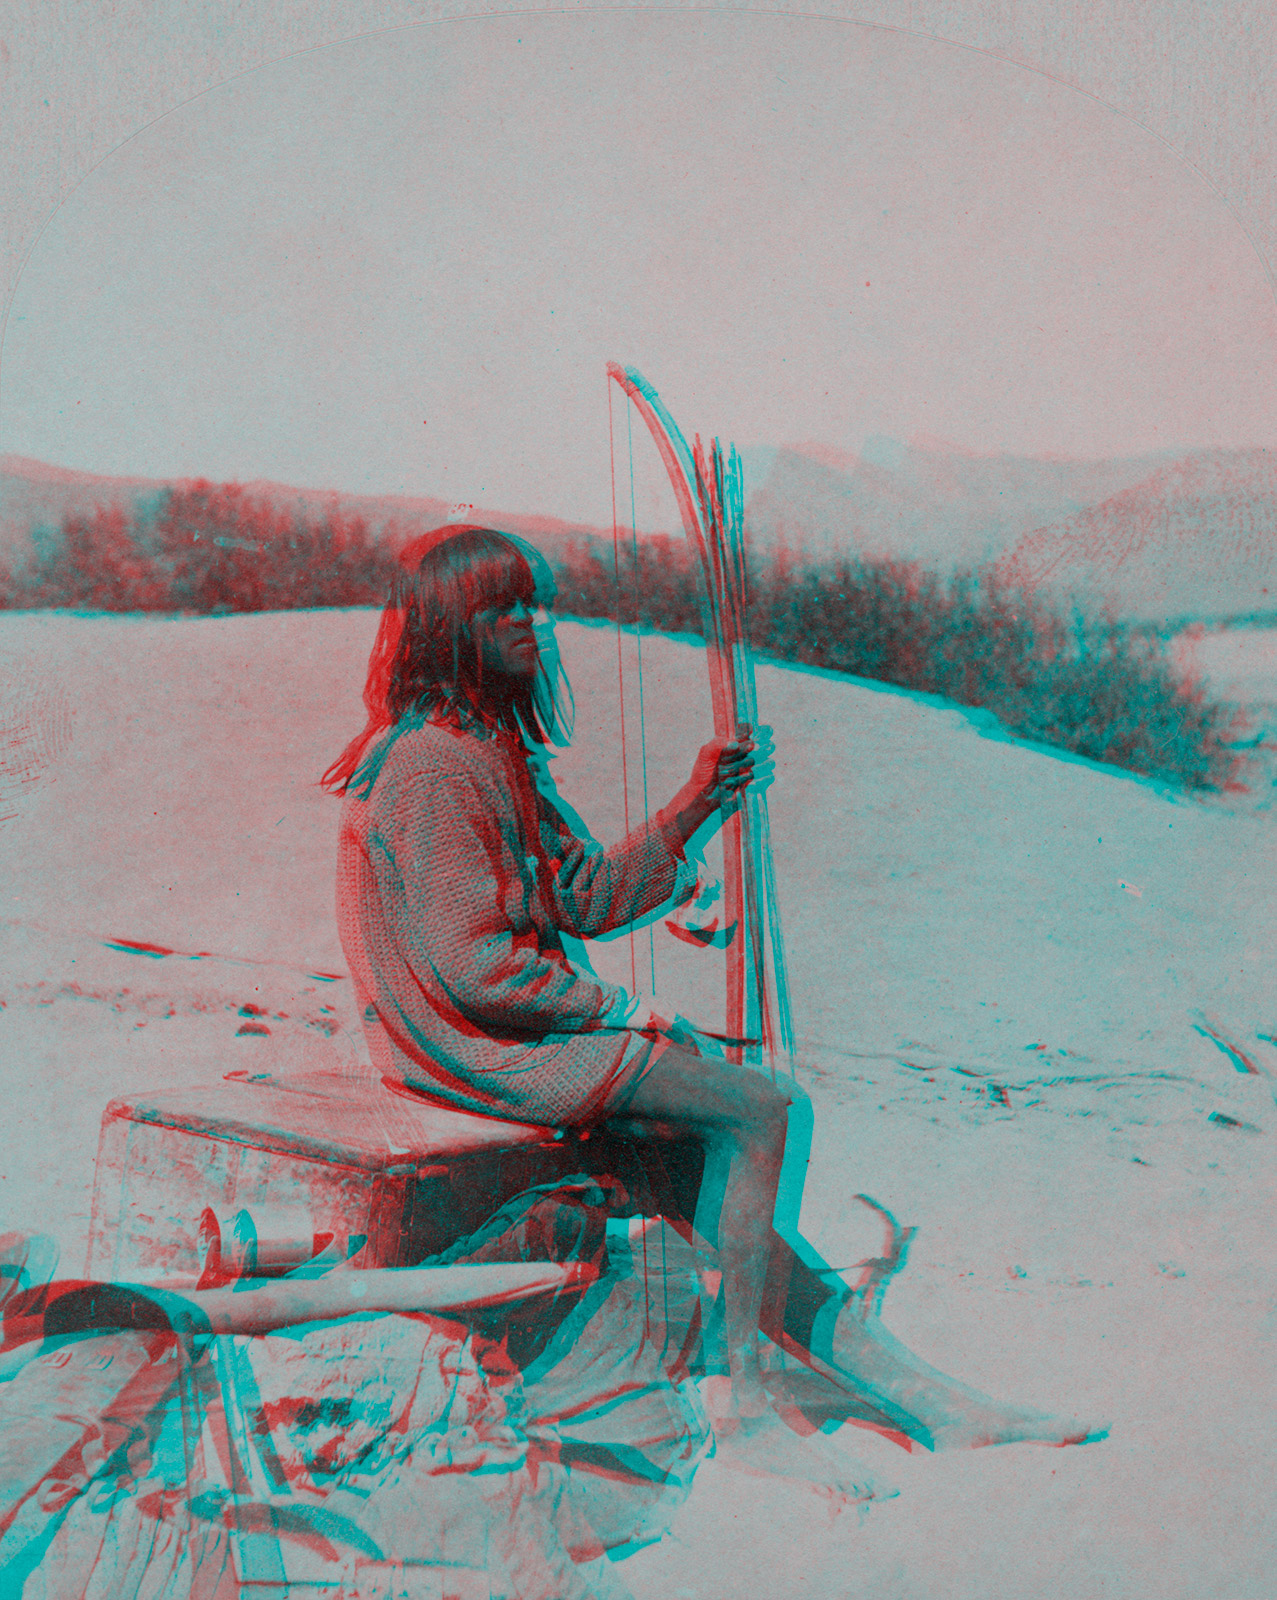 Indigenous Peoples' Day Anaglyph 2